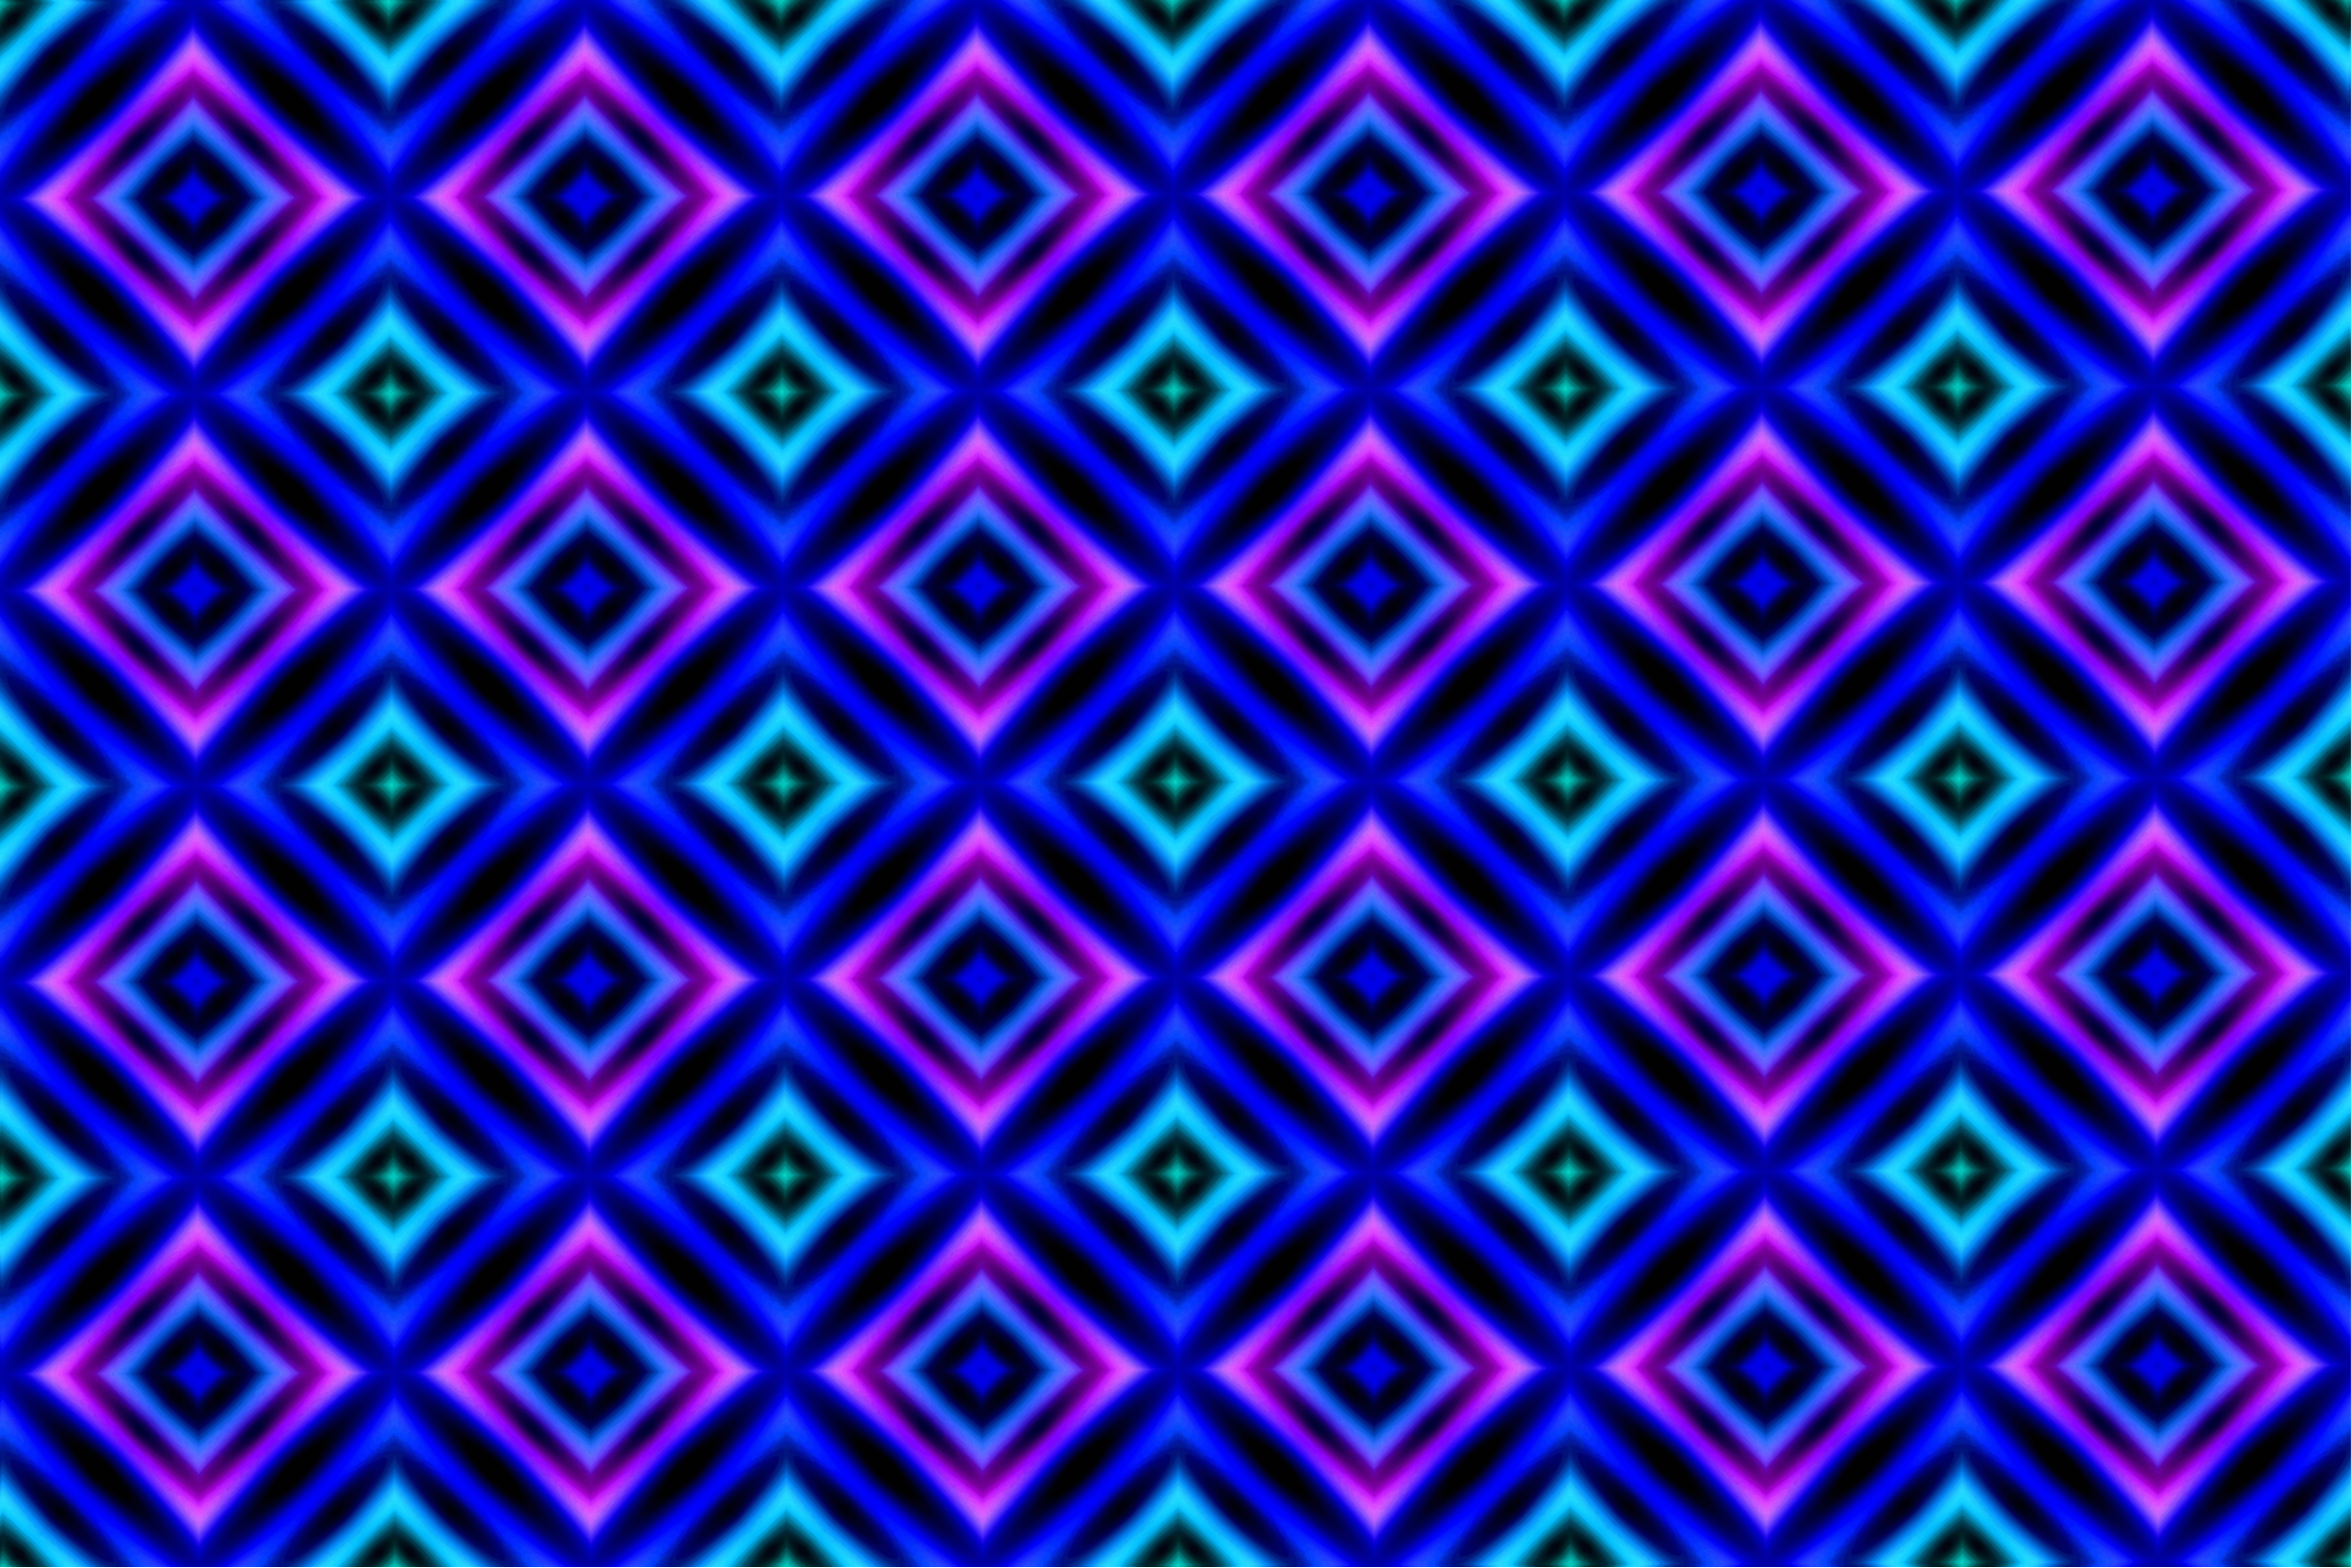 Background pattern 235 (colour 5) by Firkin